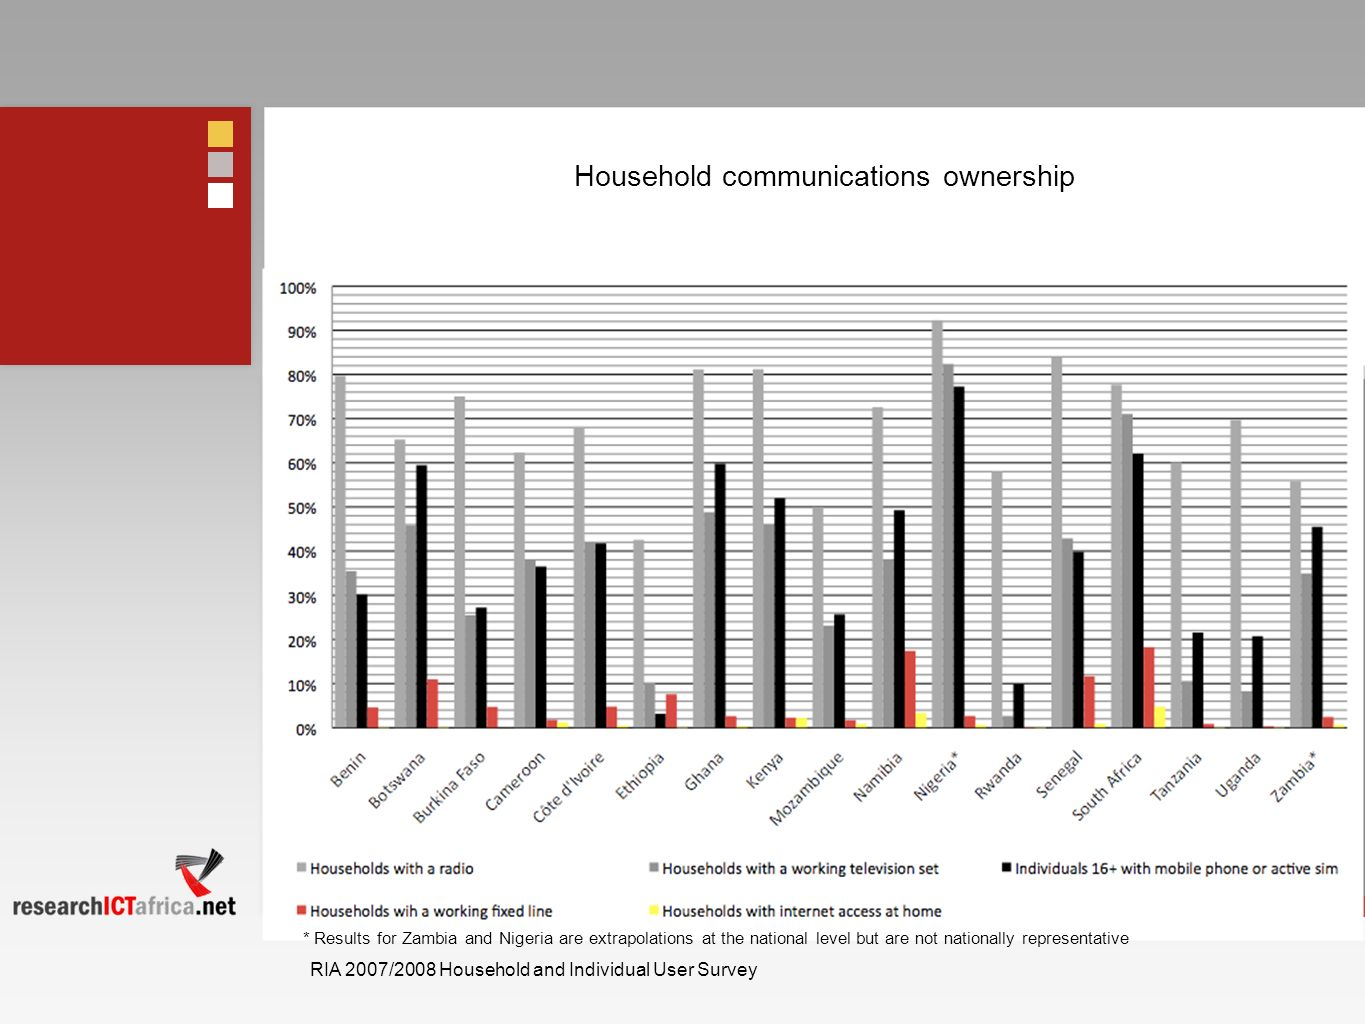 Household communications ownership